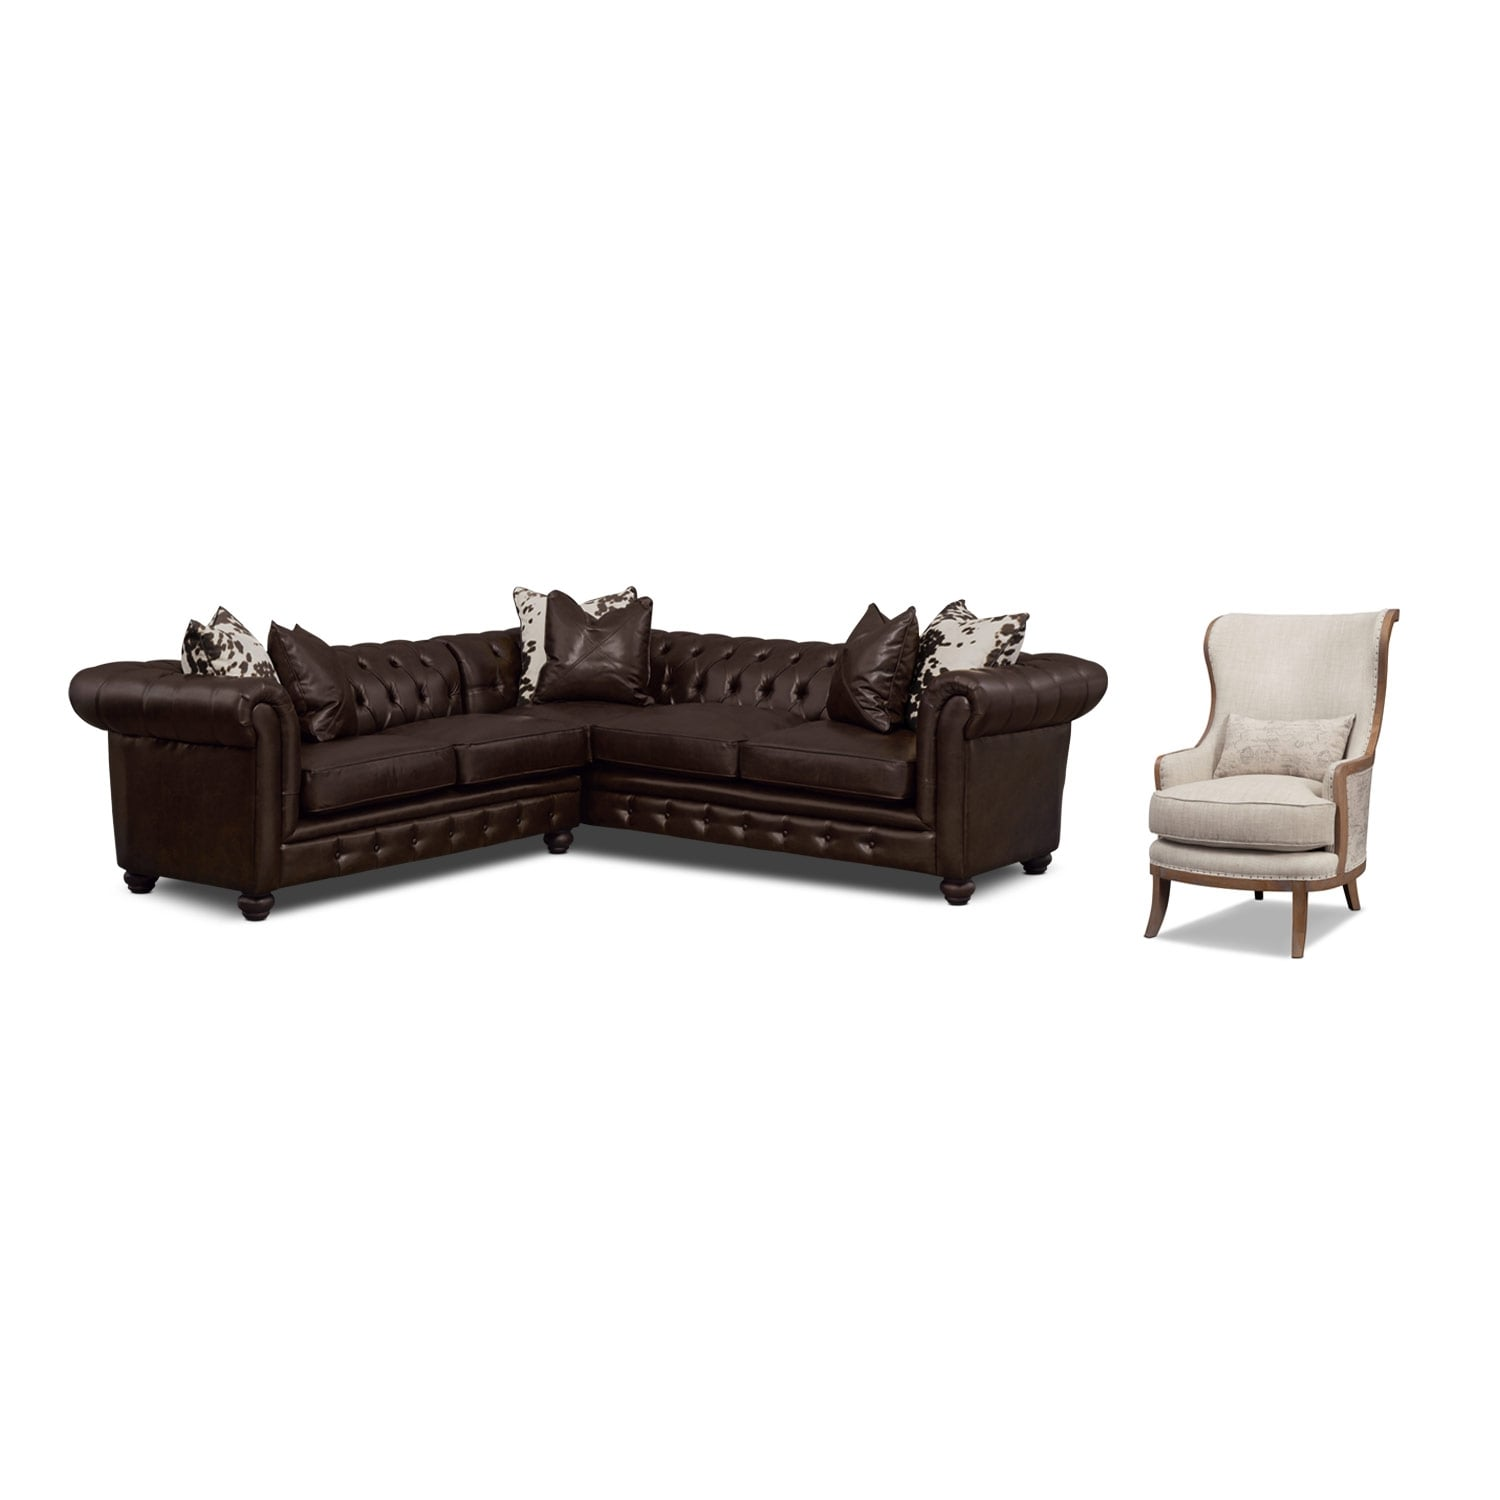 Living Room Furniture - Madeline Chocolate 2 Pc. Sectional and Framed Accent Chair